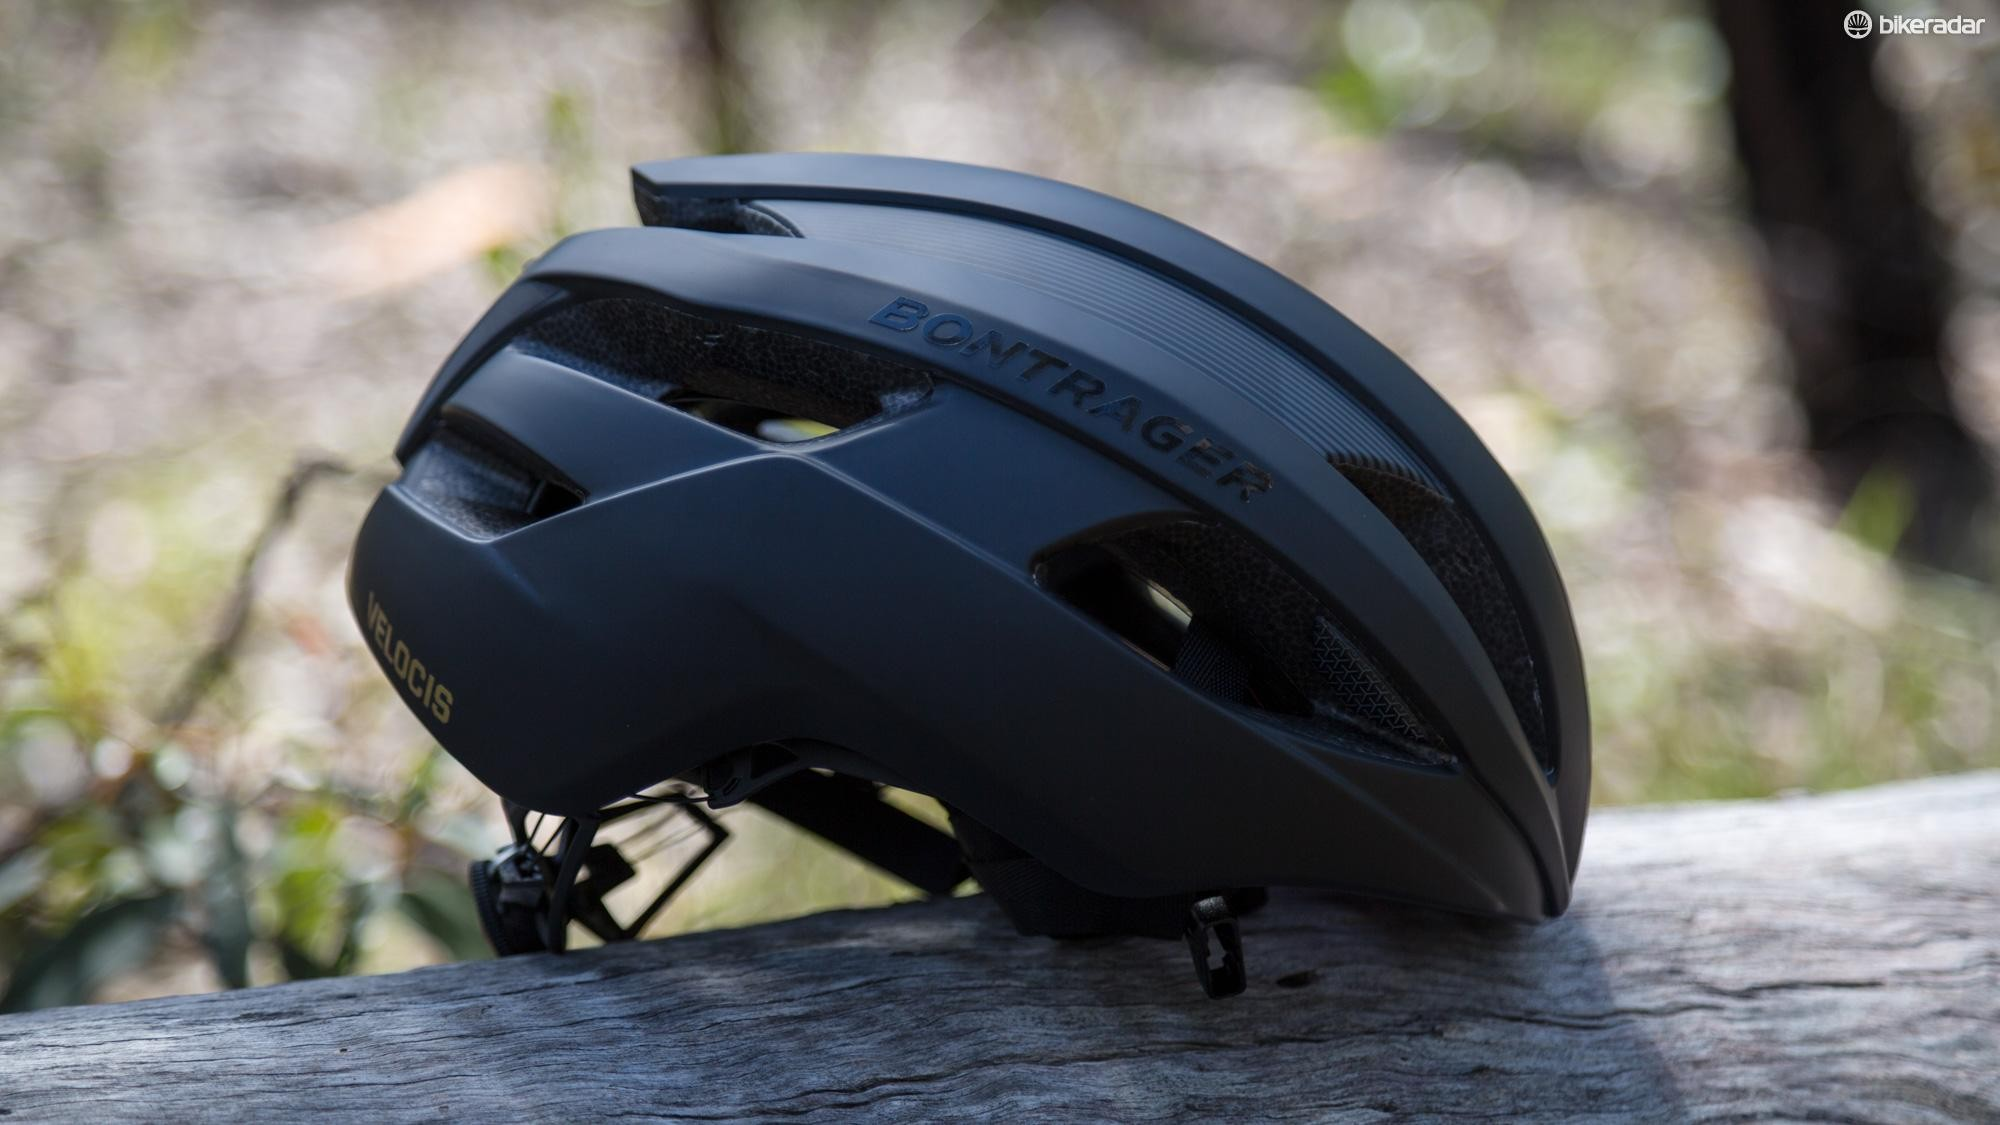 The Velocis has the snub tail shape that's becoming quite popular